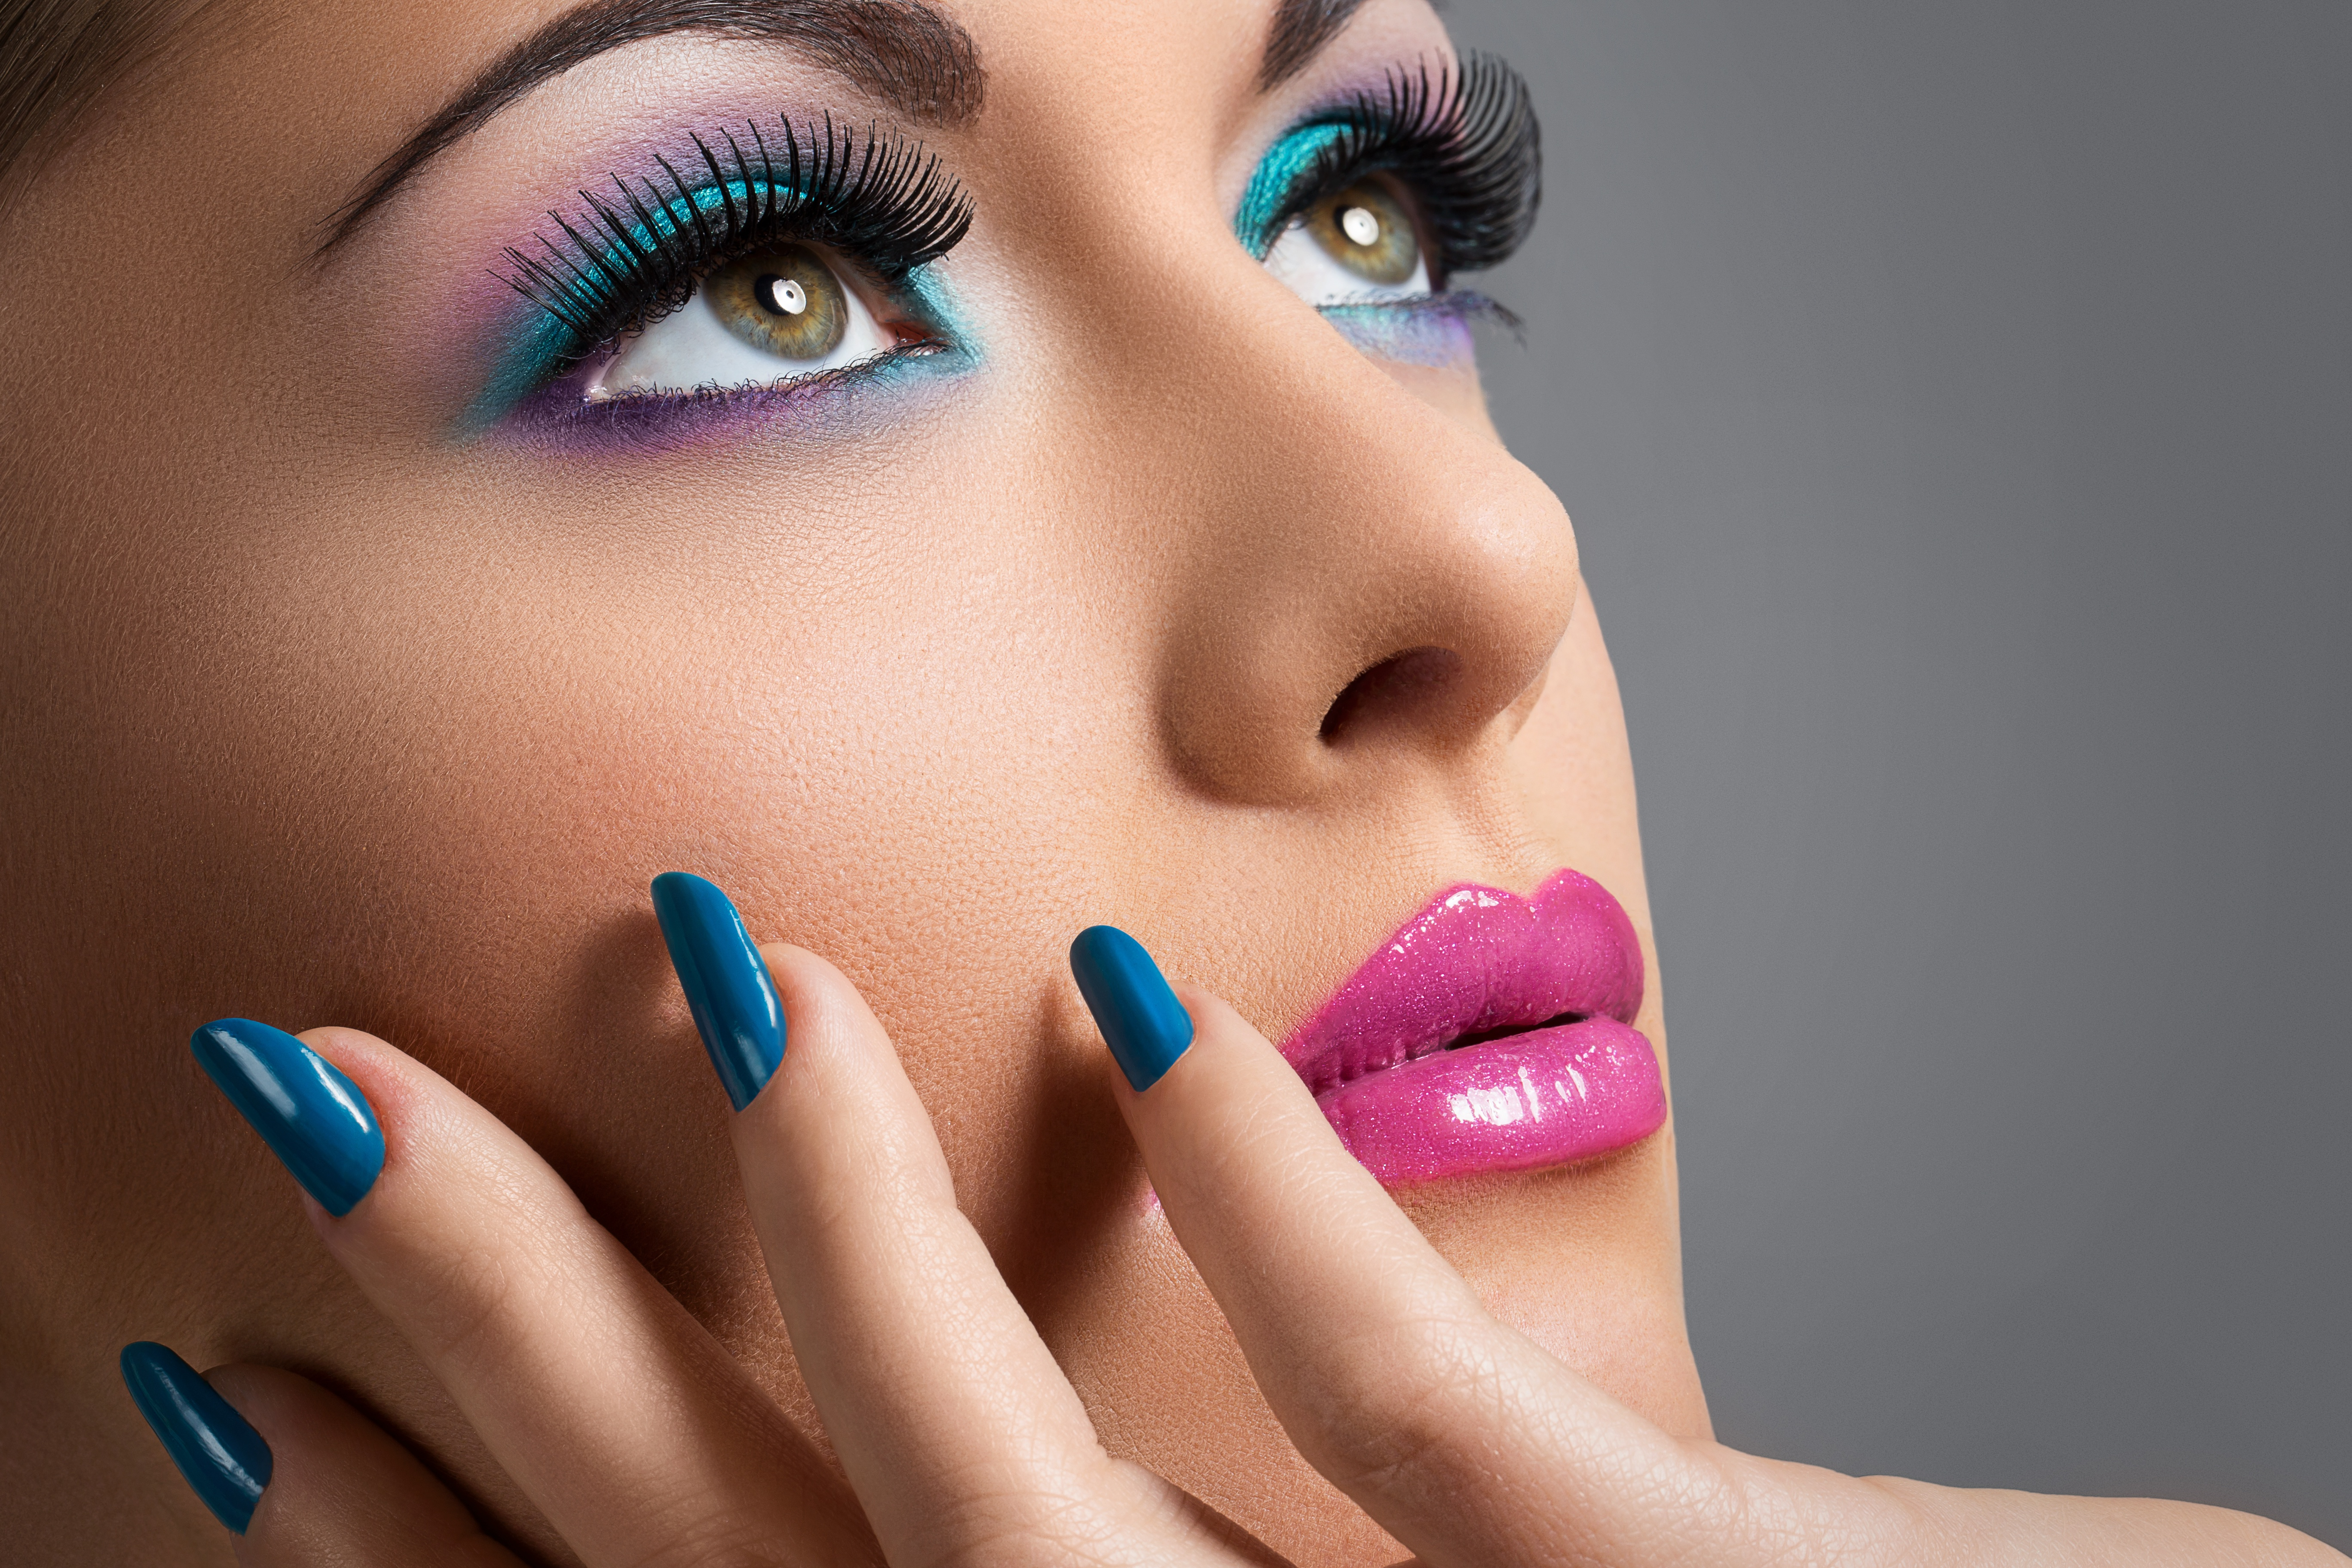 Girl with Make-up 5k Retina Ultra HD Wallpaper and Background Image ...